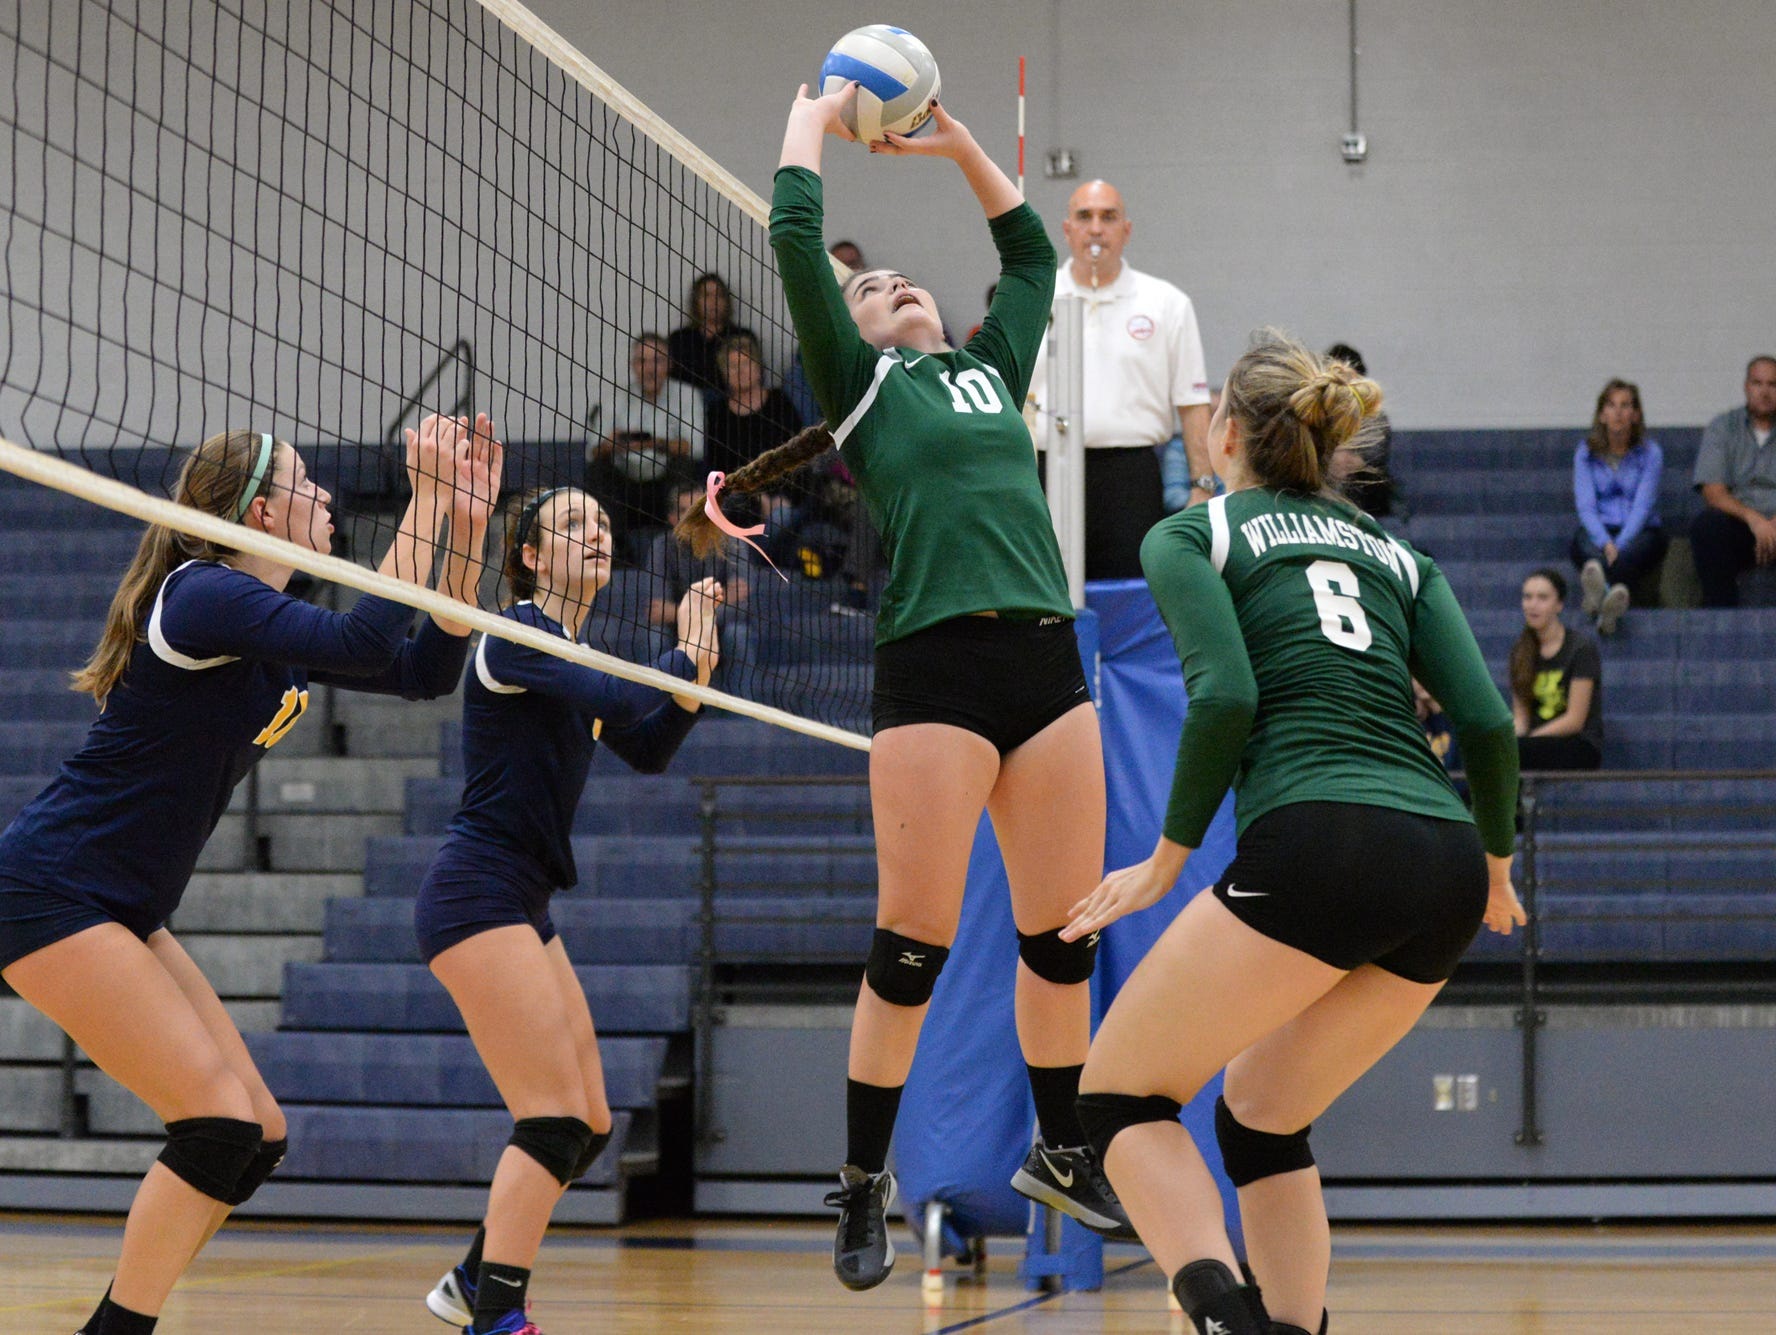 Williamston's Alana Kemler sets the ball on Thursday, Nov. 3, 2016 during the Class B Volleyball District Tournament against Haslett.